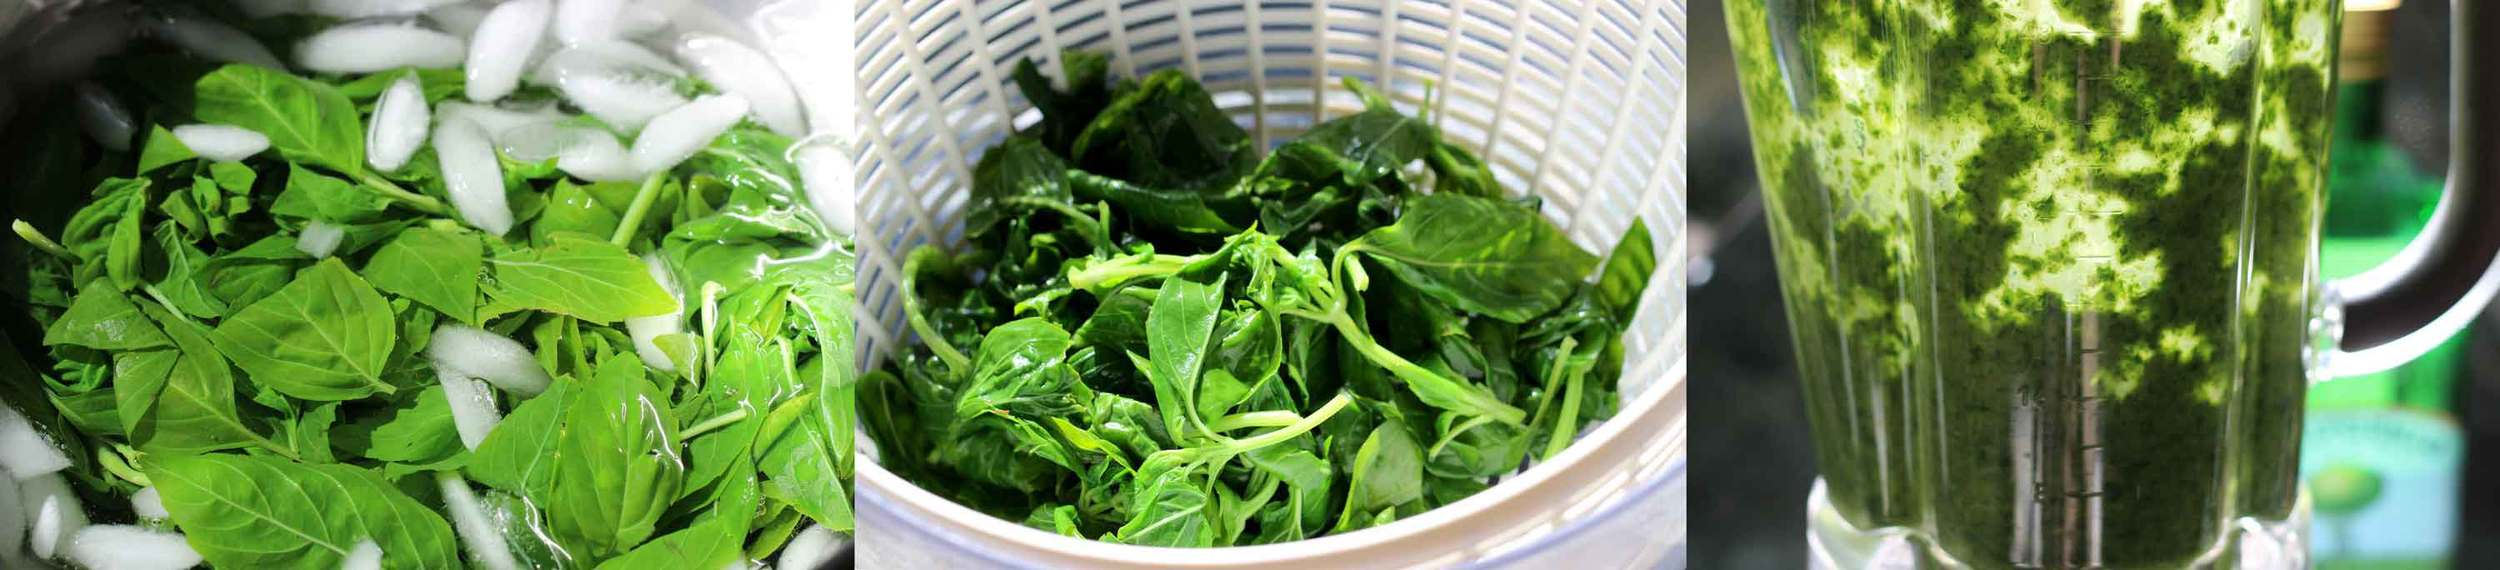 When making fresh basil oil, an ice bath followed by a drying cycle in a salad spinner  ensures a vibrant green color  when it hits the blender.